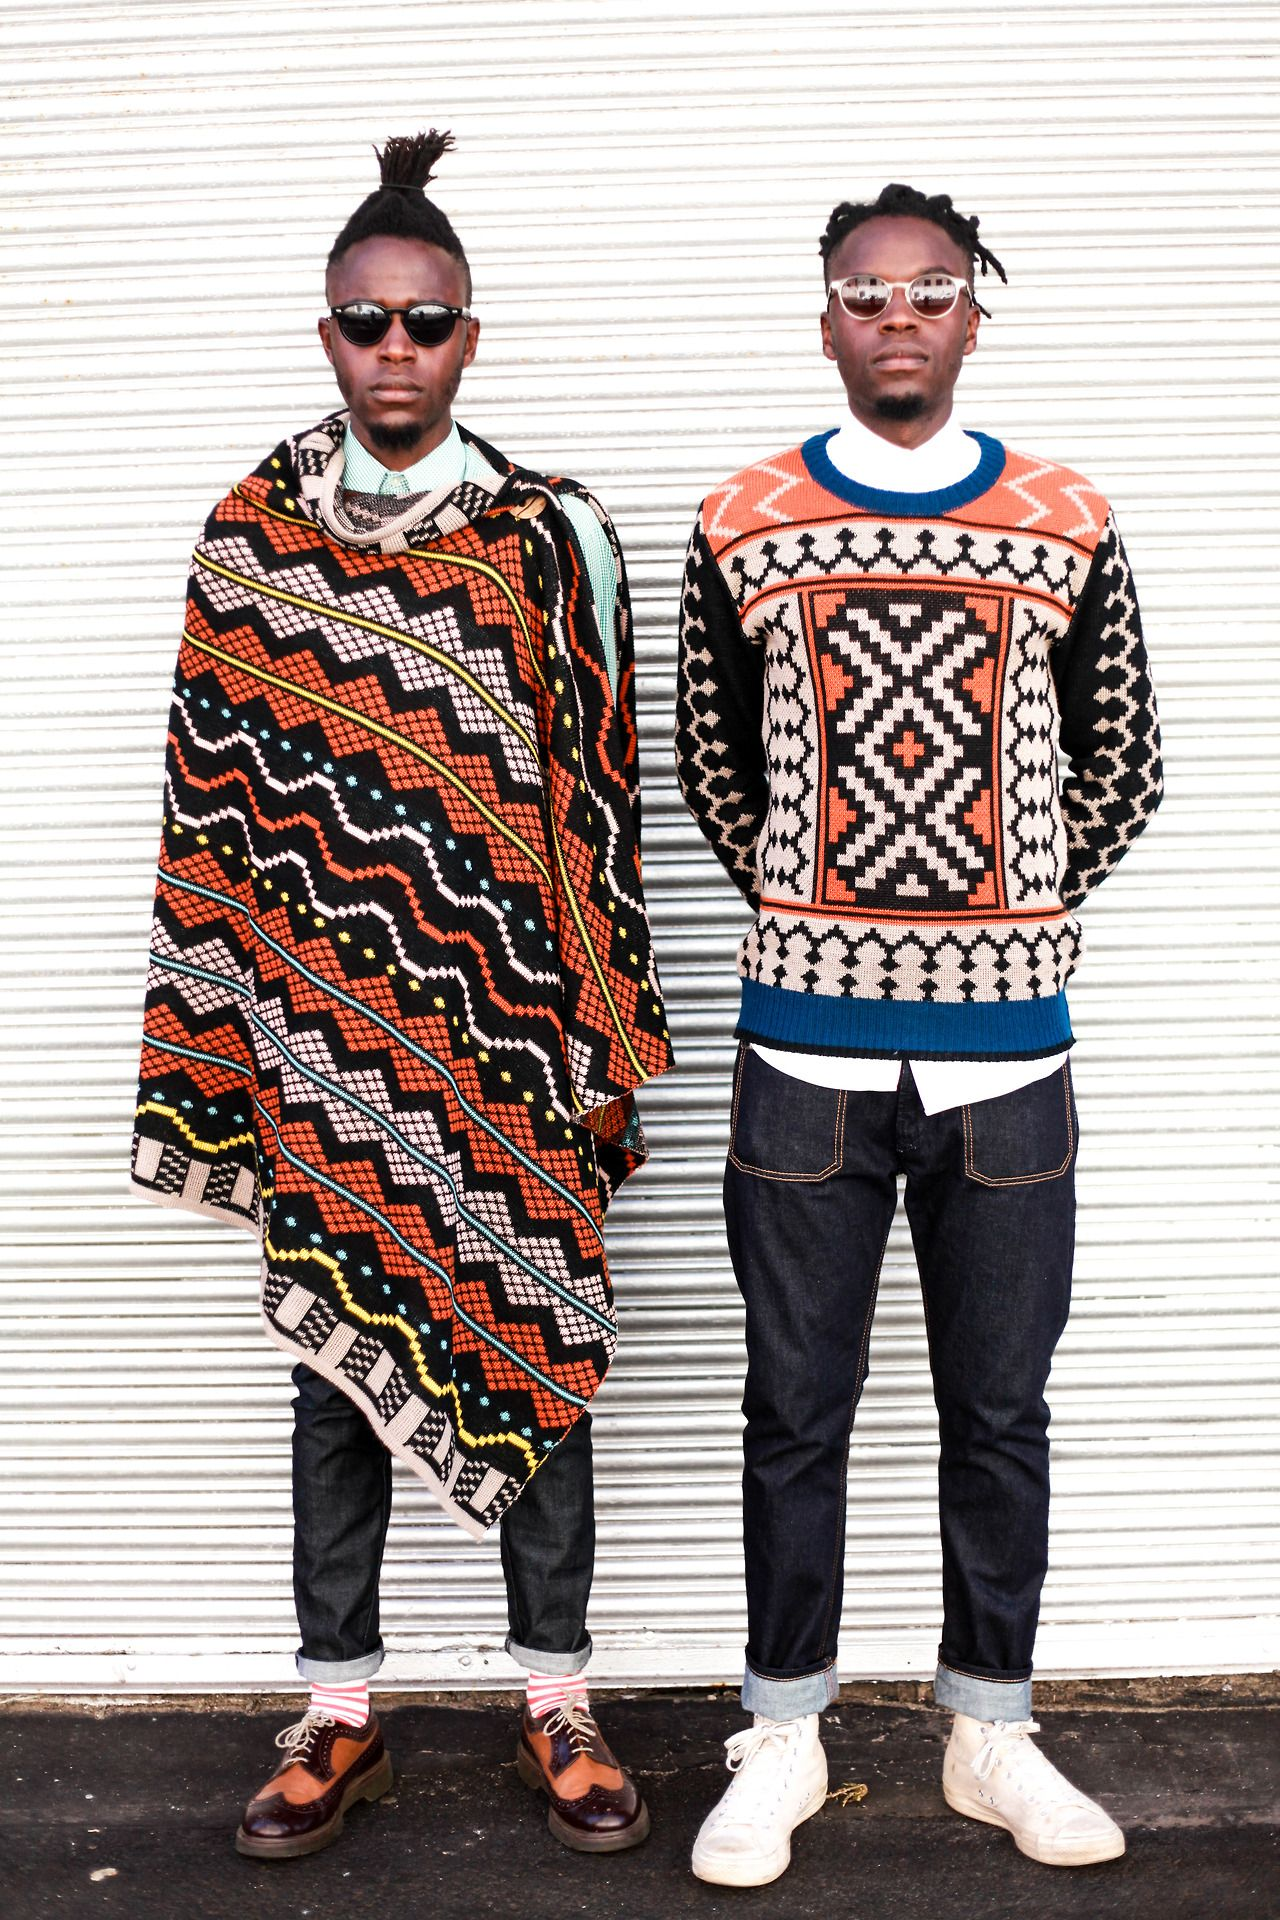 Sapeur, Exotique, Mode Africaine Homme, Mode Wax, Mode Ethnique, Look Homme